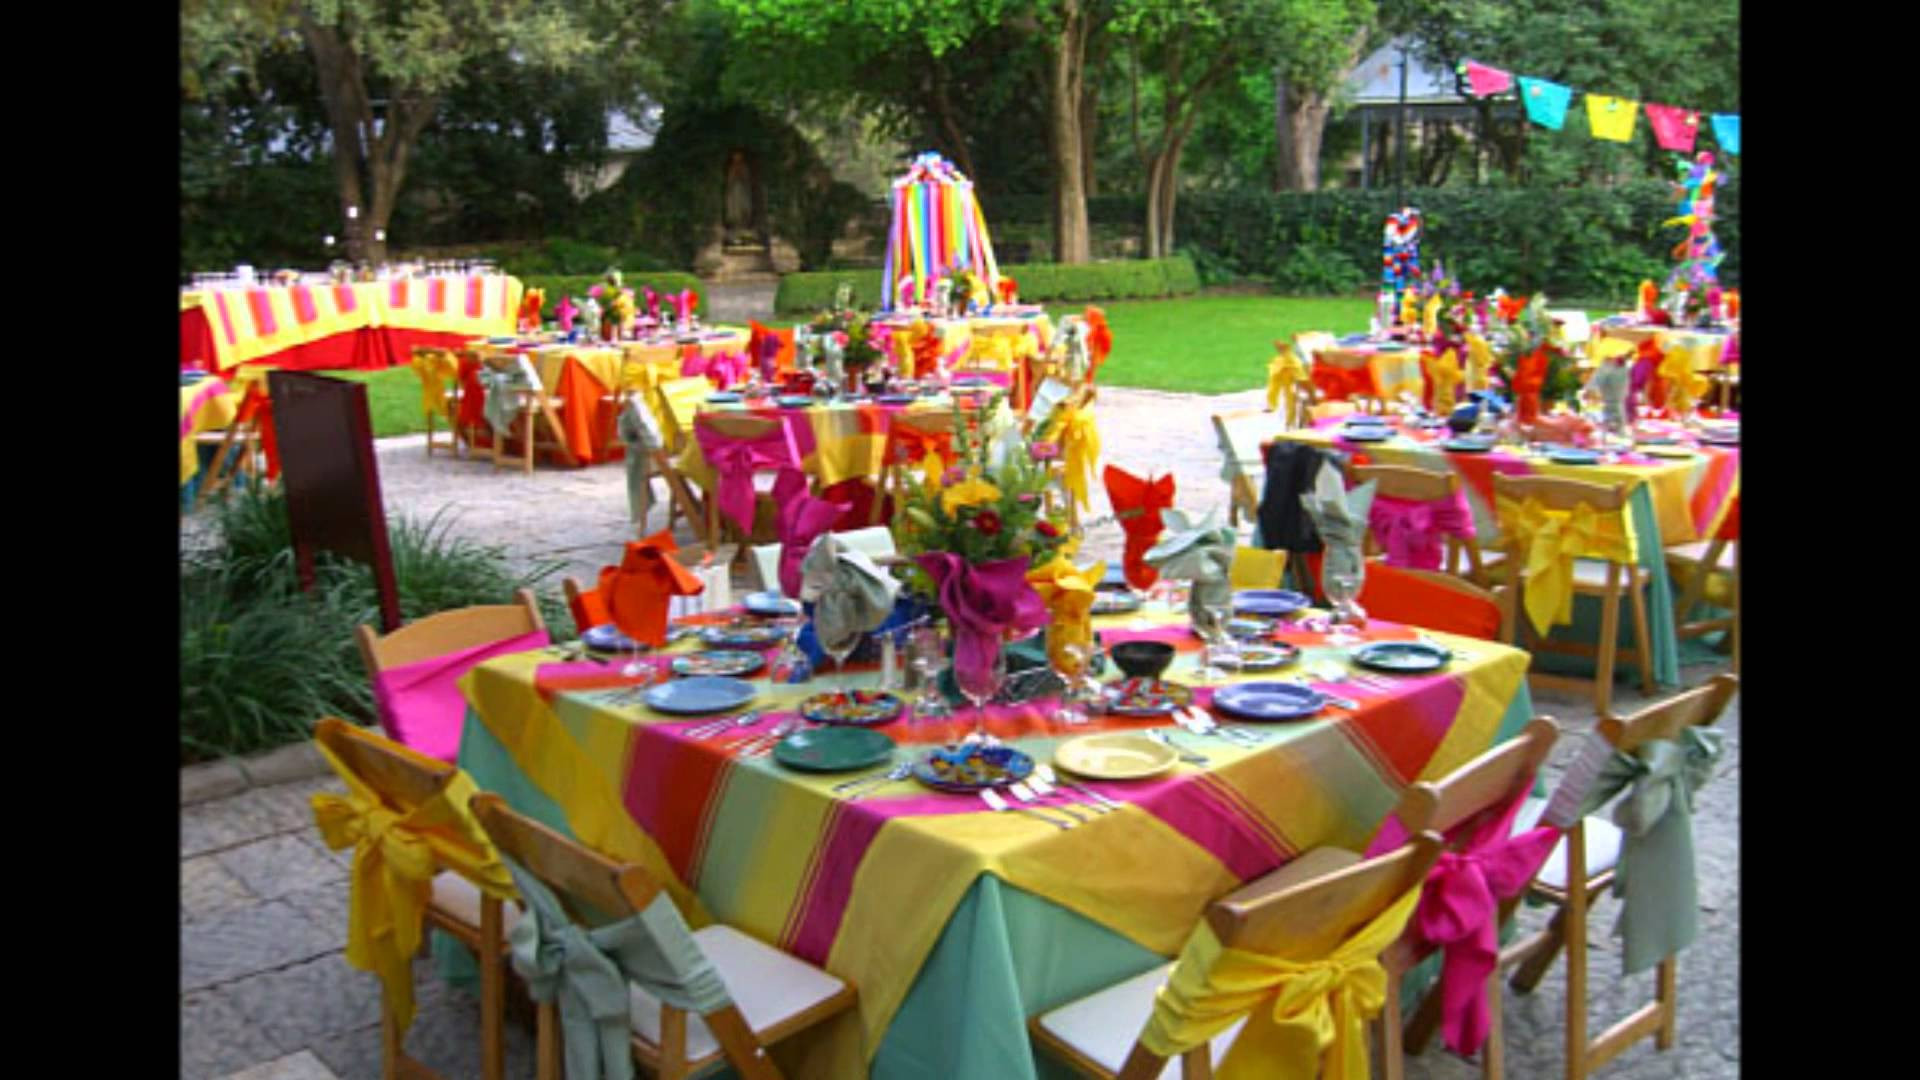 Best ideas about Kids Birthday Party Decorations . Save or Pin West Palm Beach Boynton Beach Lake Worth Now.